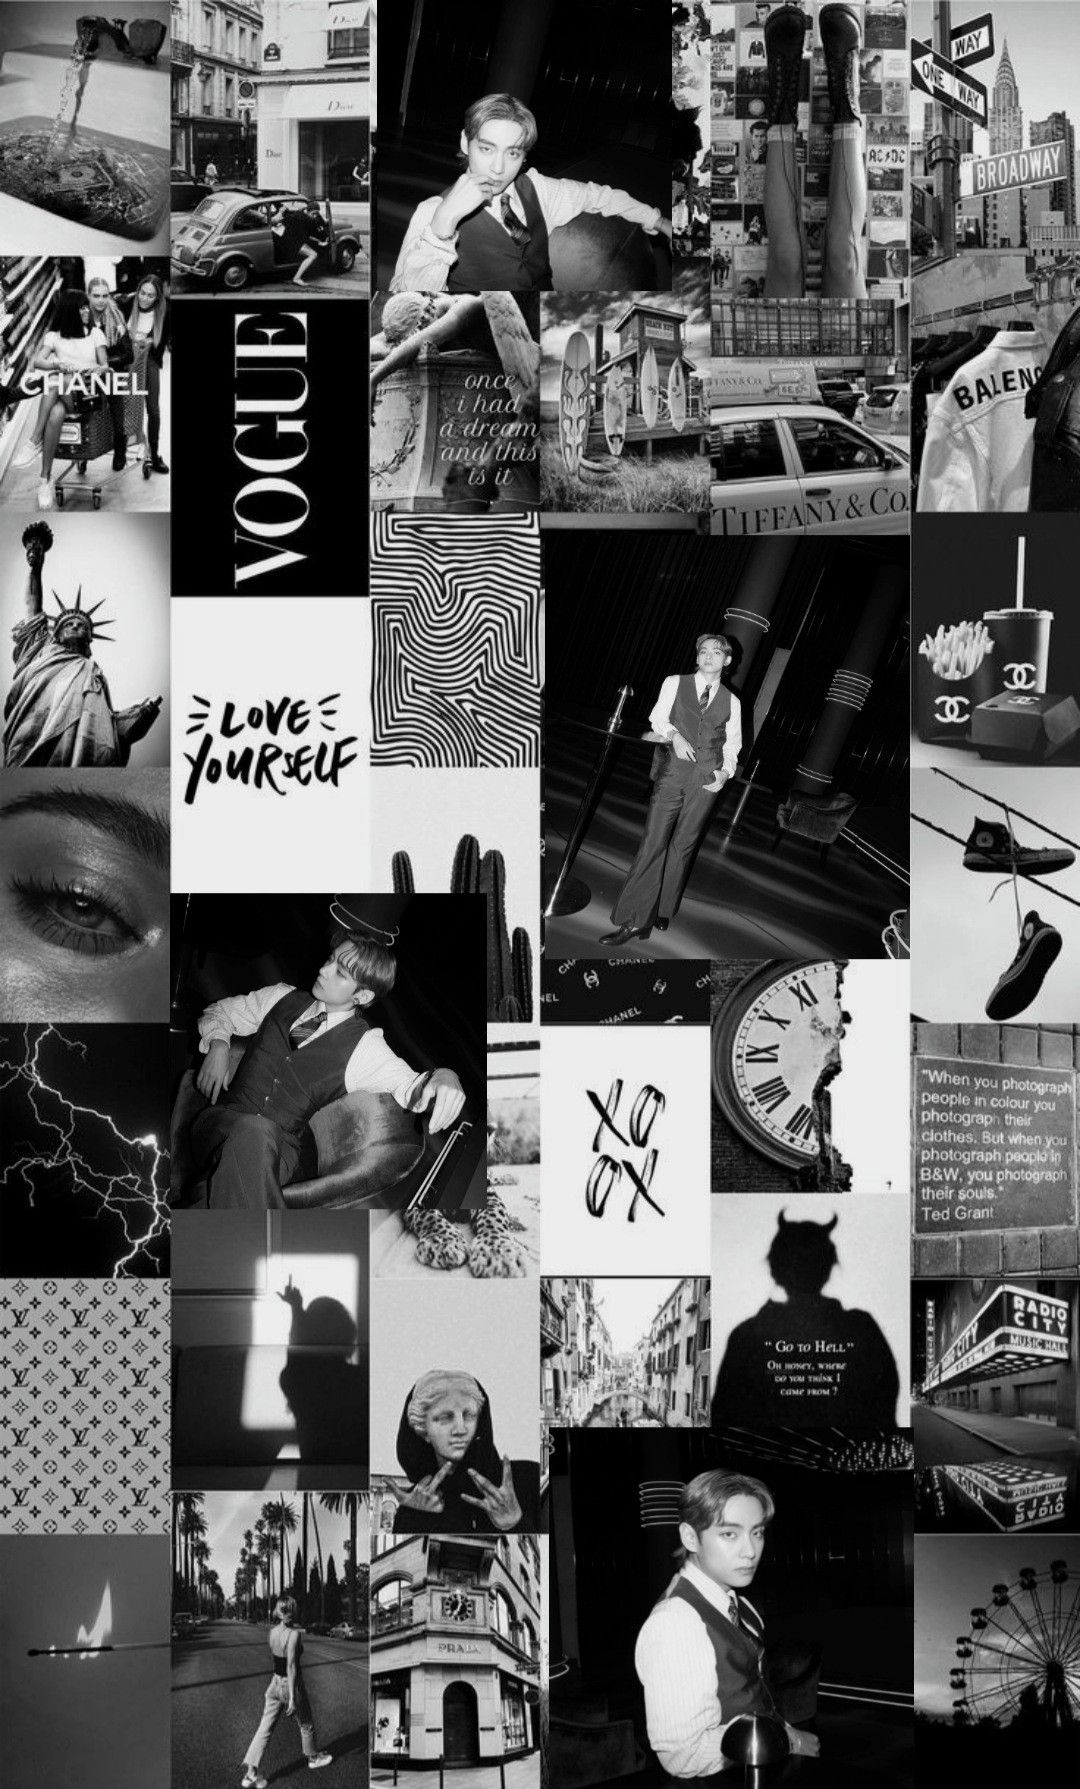 Taehyung Collage Cute Black Wallpaper Edgy Wallpaper Black Aesthetic Wallpaper Aesthetic edgy black and white wallpaper